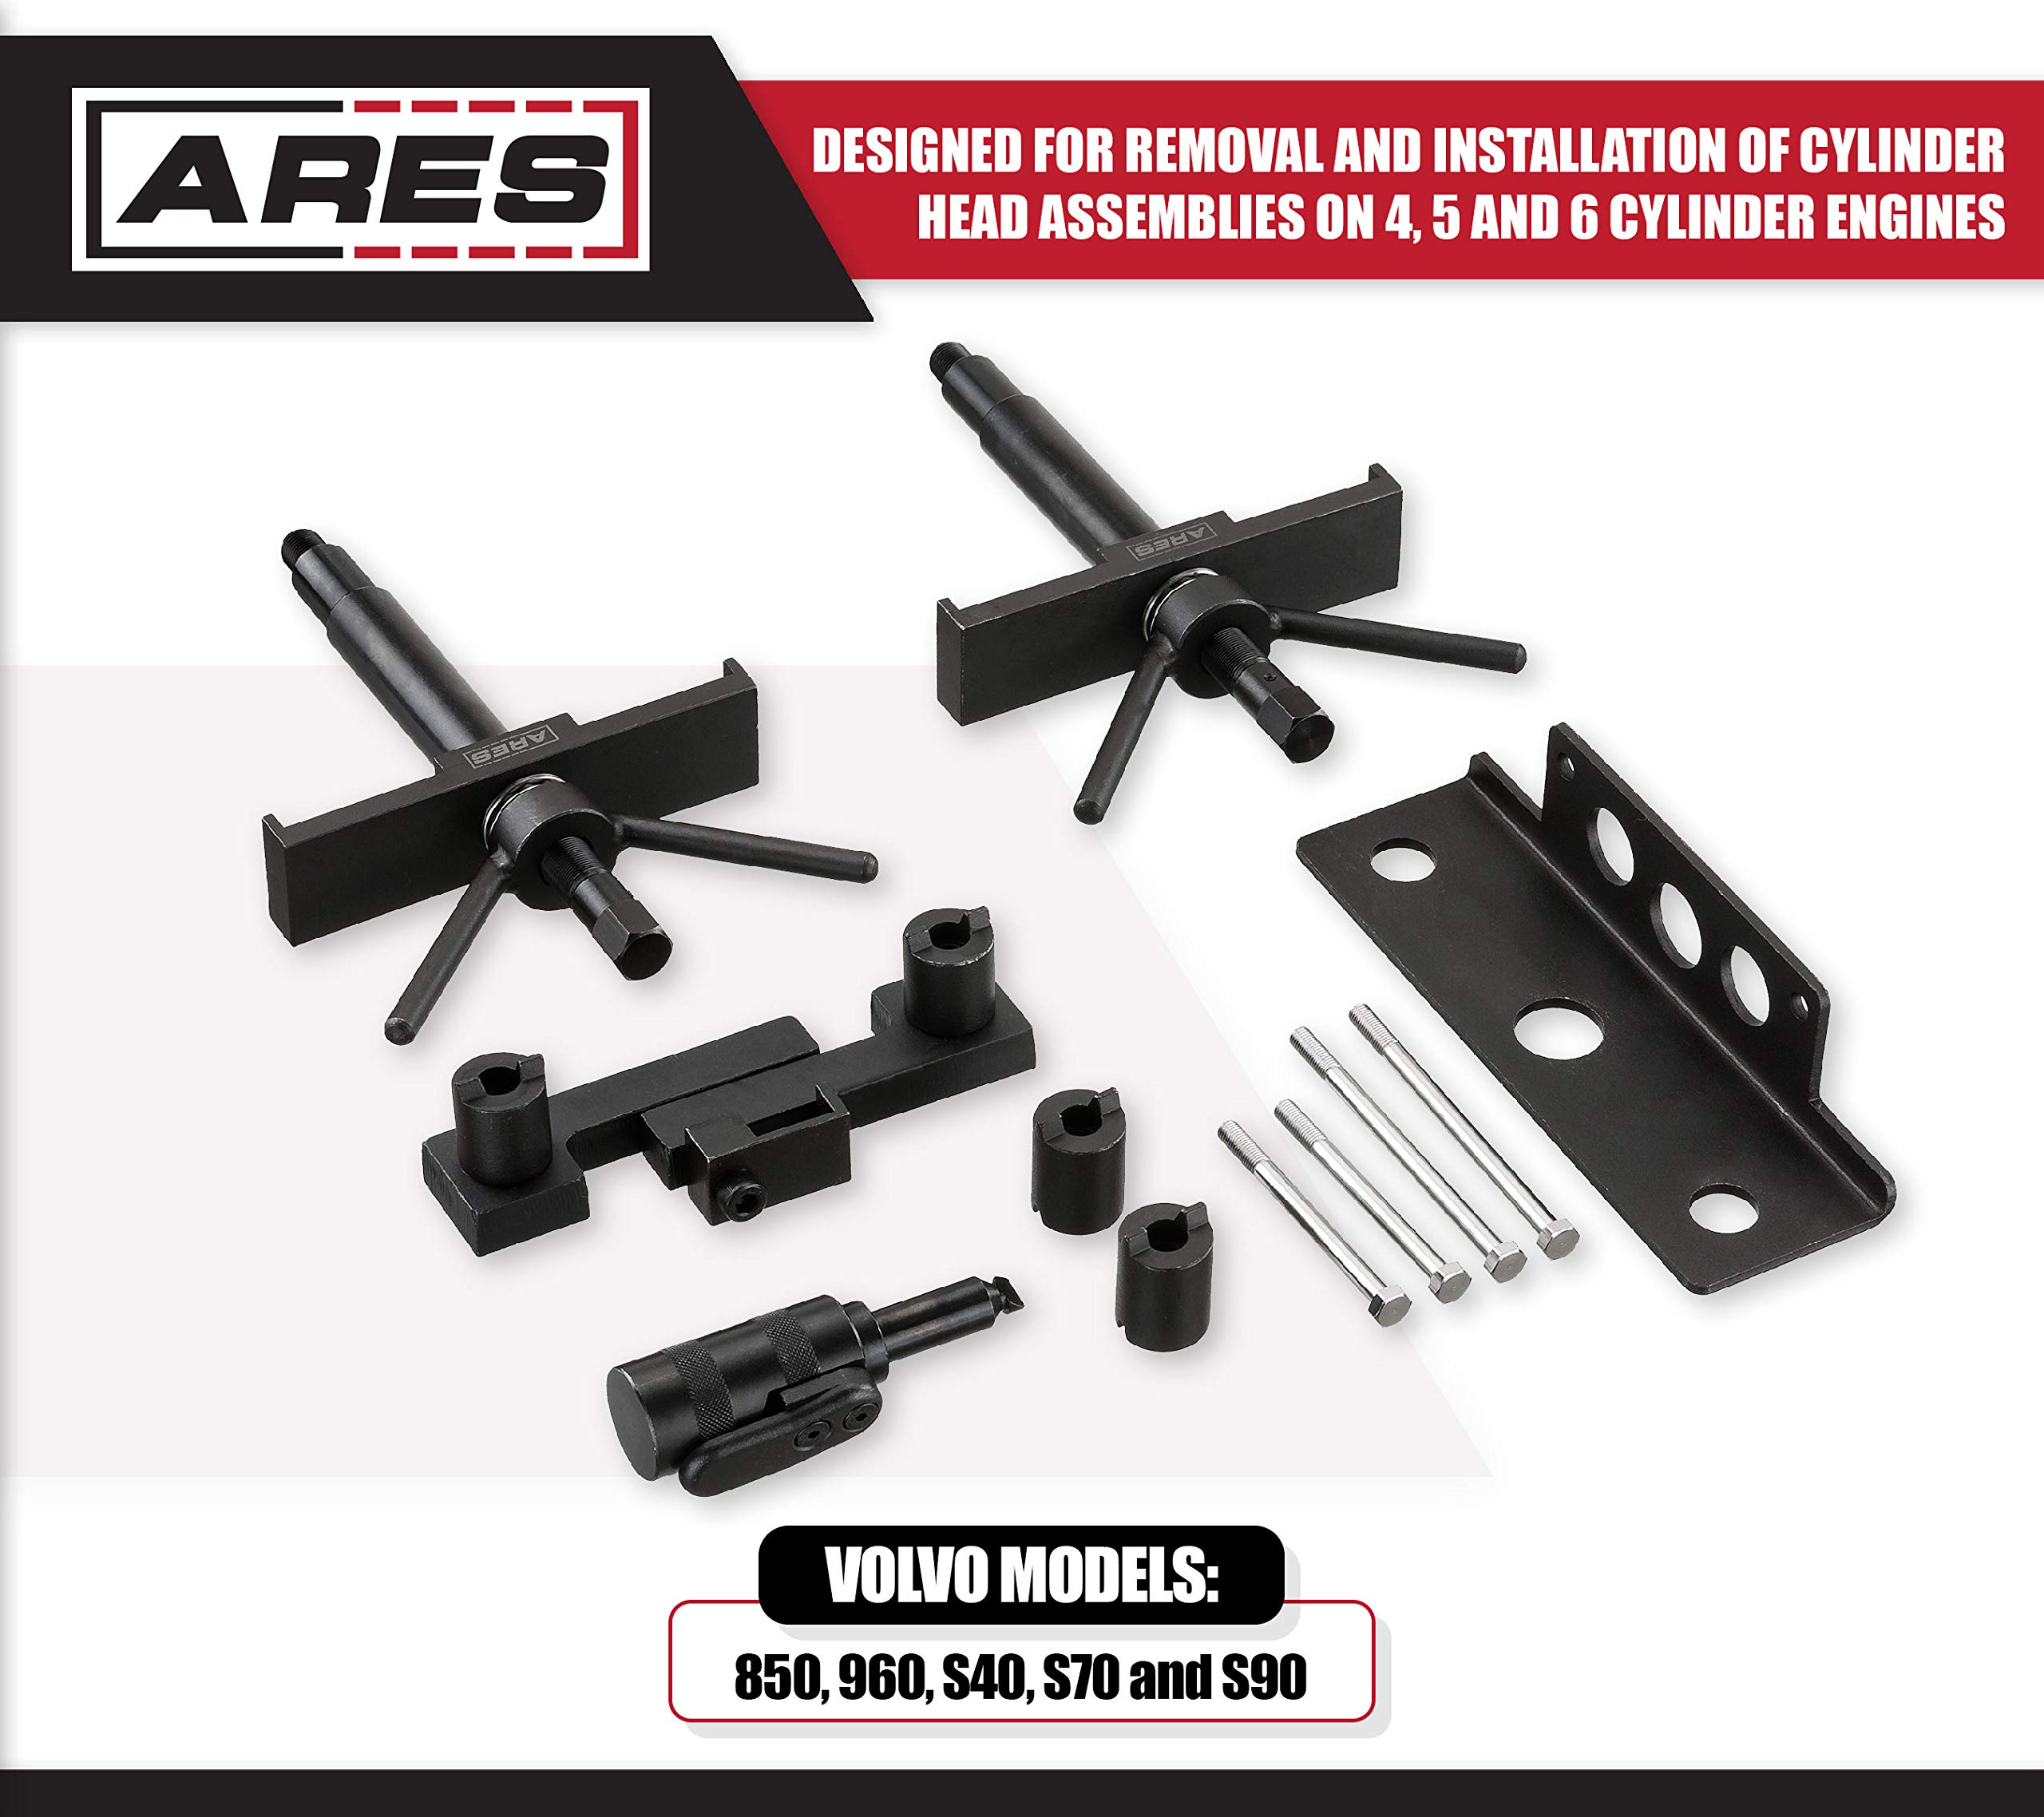 ARES 71506 | Volvo Camshaft, Crankshaft, and Timing Alignment Master Tool Set | Deep Counter-Weighted Sockets for Increased Torque | Correctly Install Camshafts with Cam Cover by ARES (Image #1)